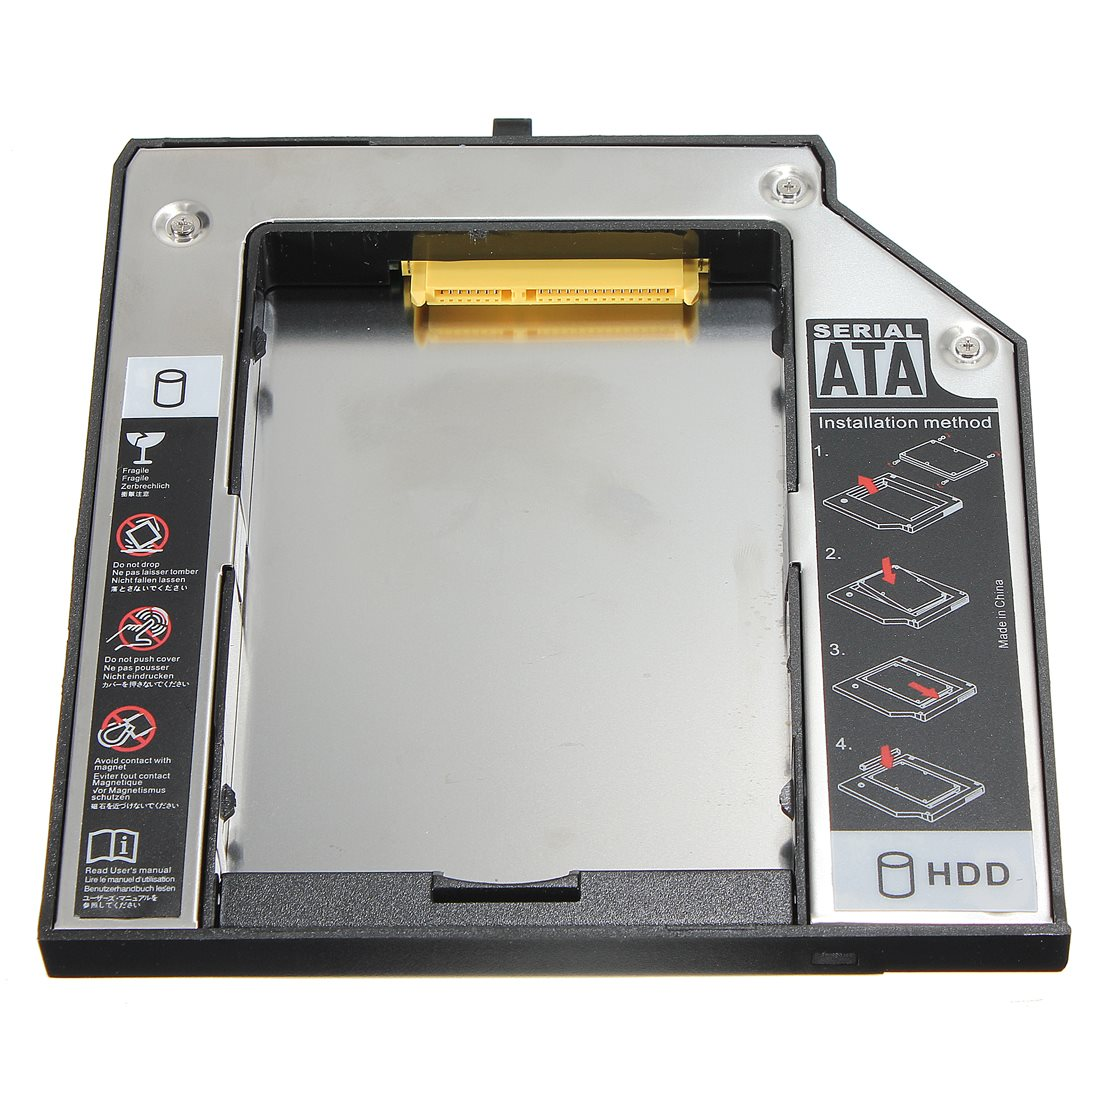 New Arrival Second SATA Hard Drive Adapter Bay Caddy For LENOVO For Thinkpad T420 T520 W520 12.7mm Laptop DIY HDD Enclosure